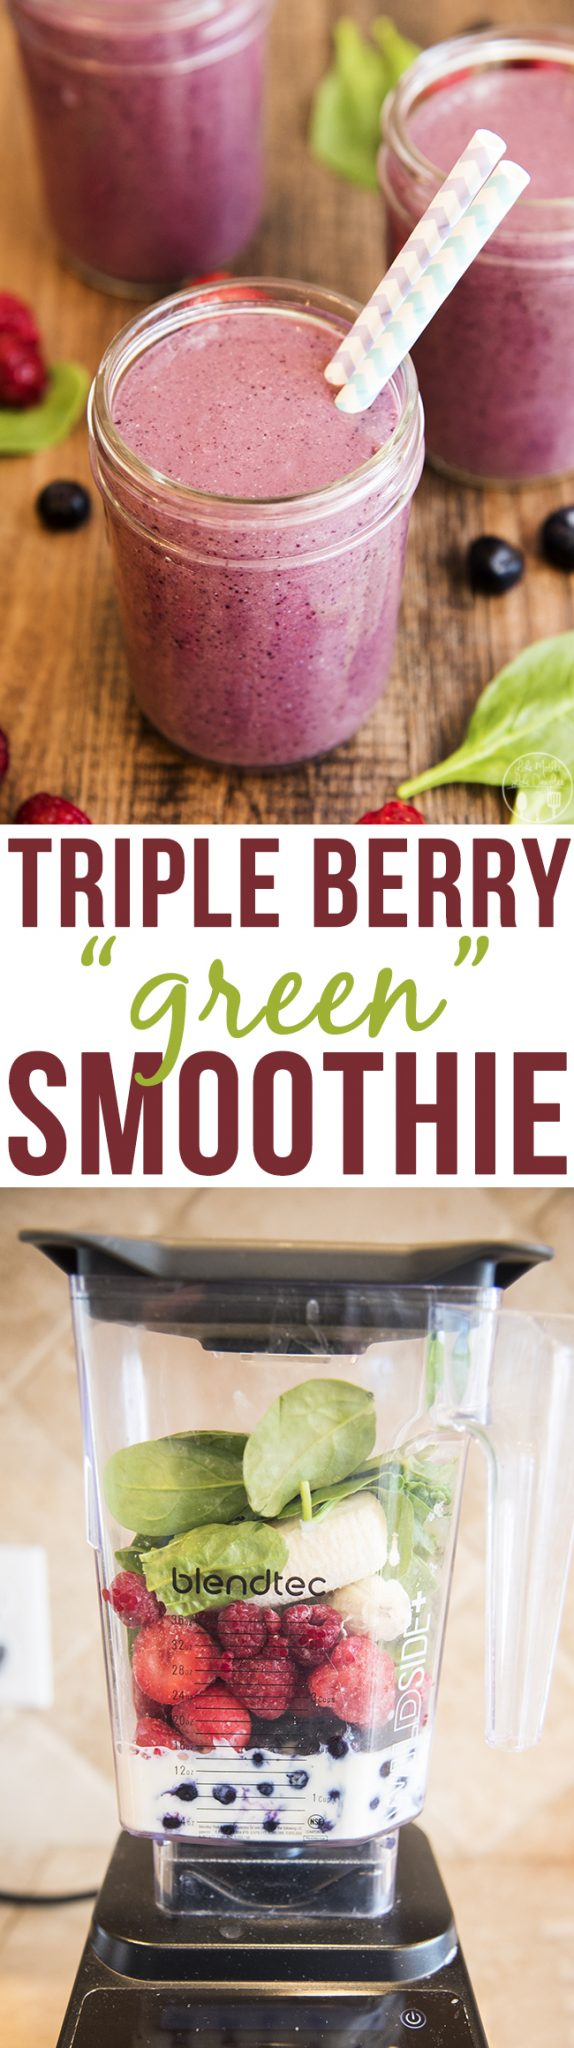 triple berry green smoothie is packed full of three kinds of berries ...